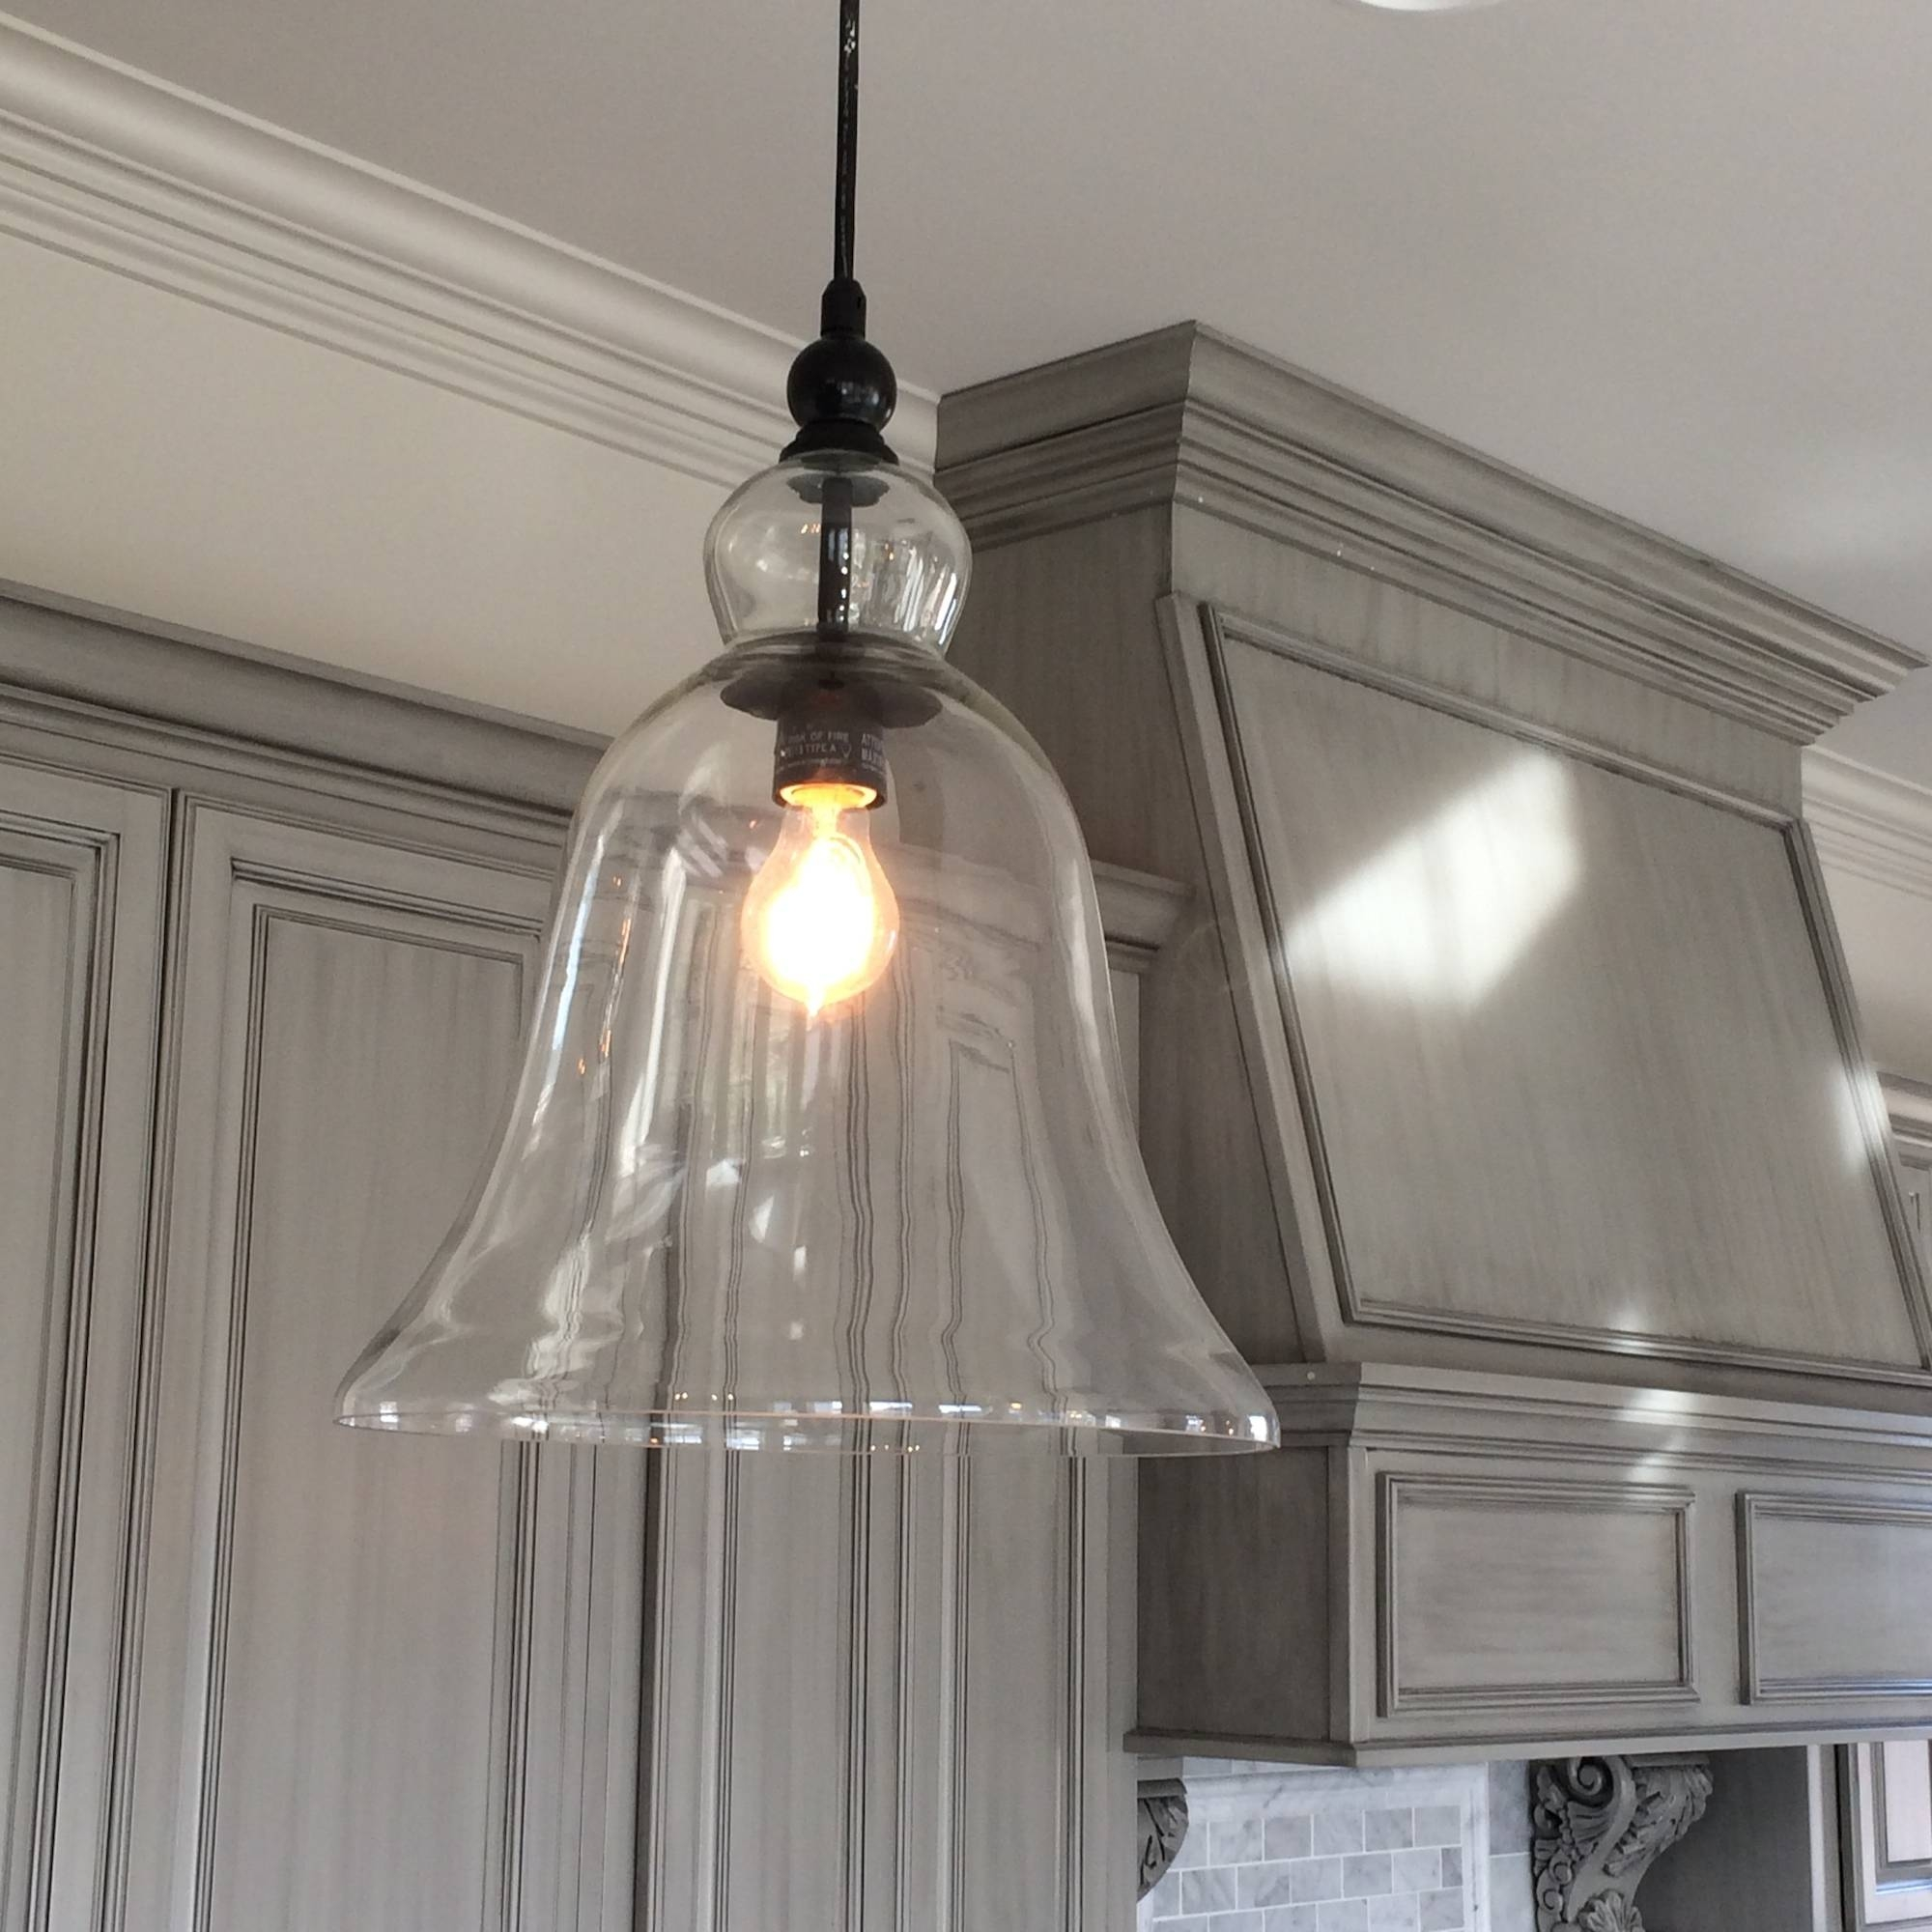 Long Pendant Lights: 15 Best Collection Of Extra Long Pendant Lights